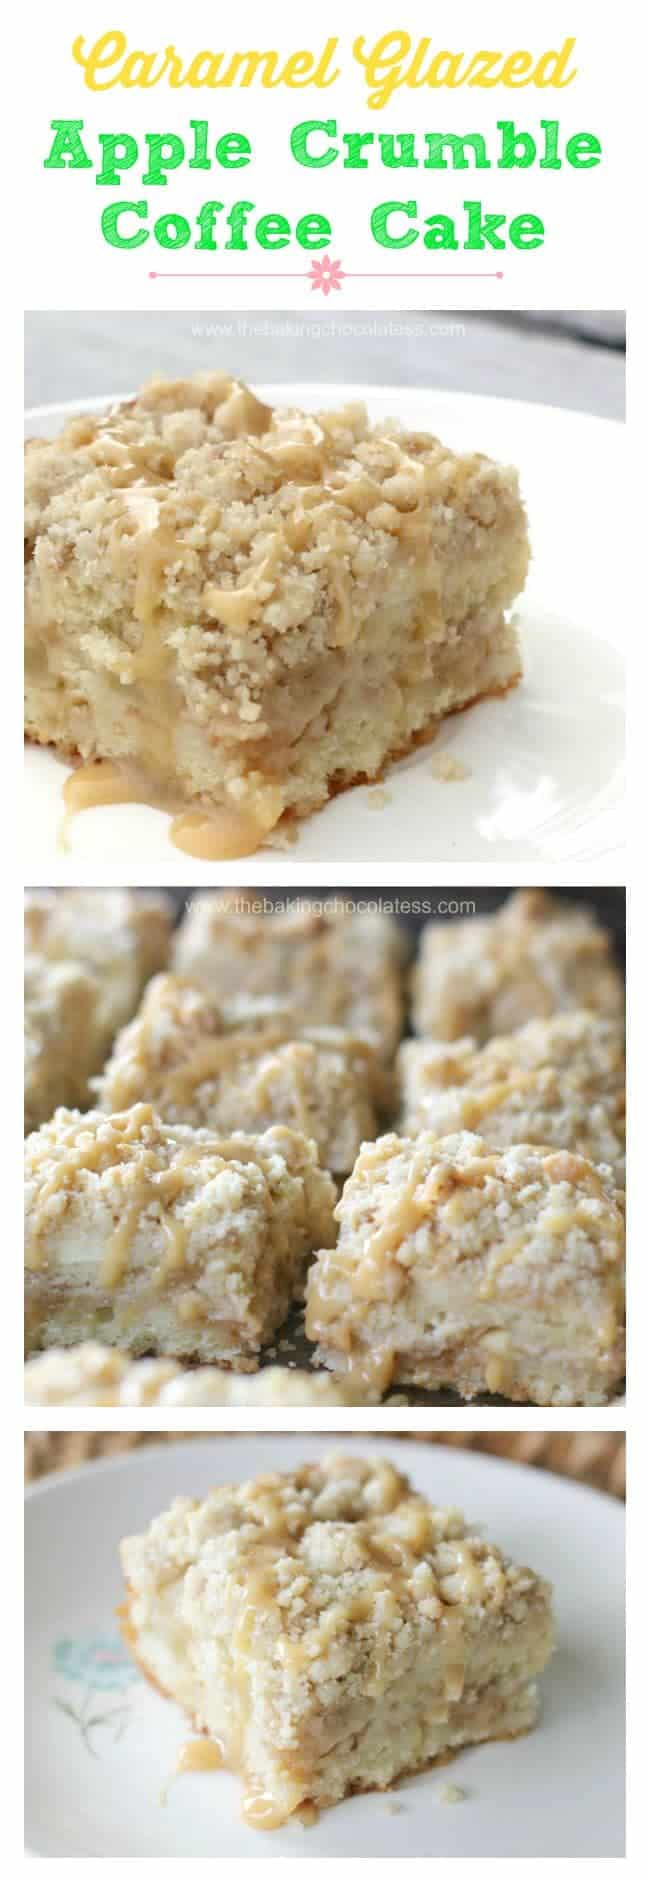 Caramel Glazed Apple Crumble Coffee Cake